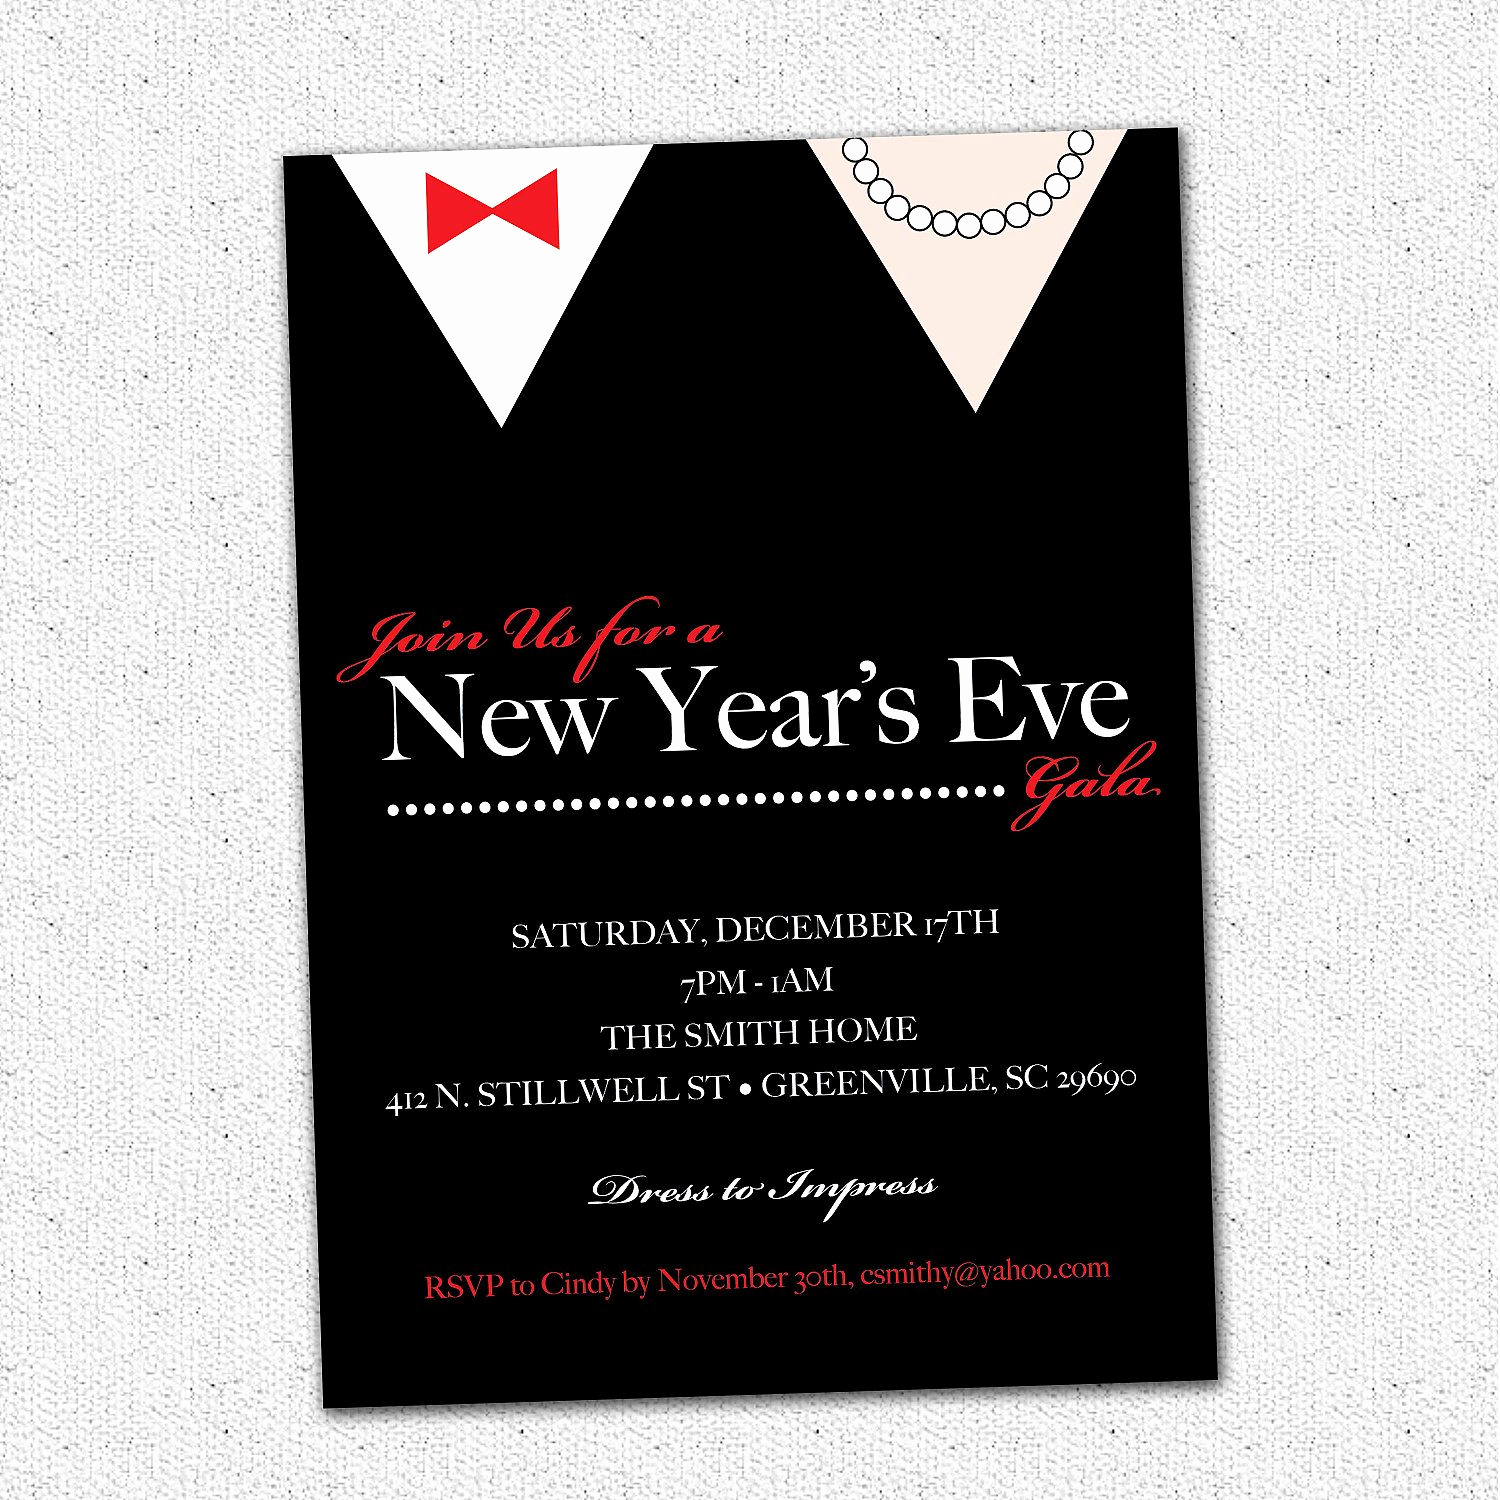 Black Tie event Invitation Beautiful New Years Eve Gala Ball Celebration Bash Party Invitation